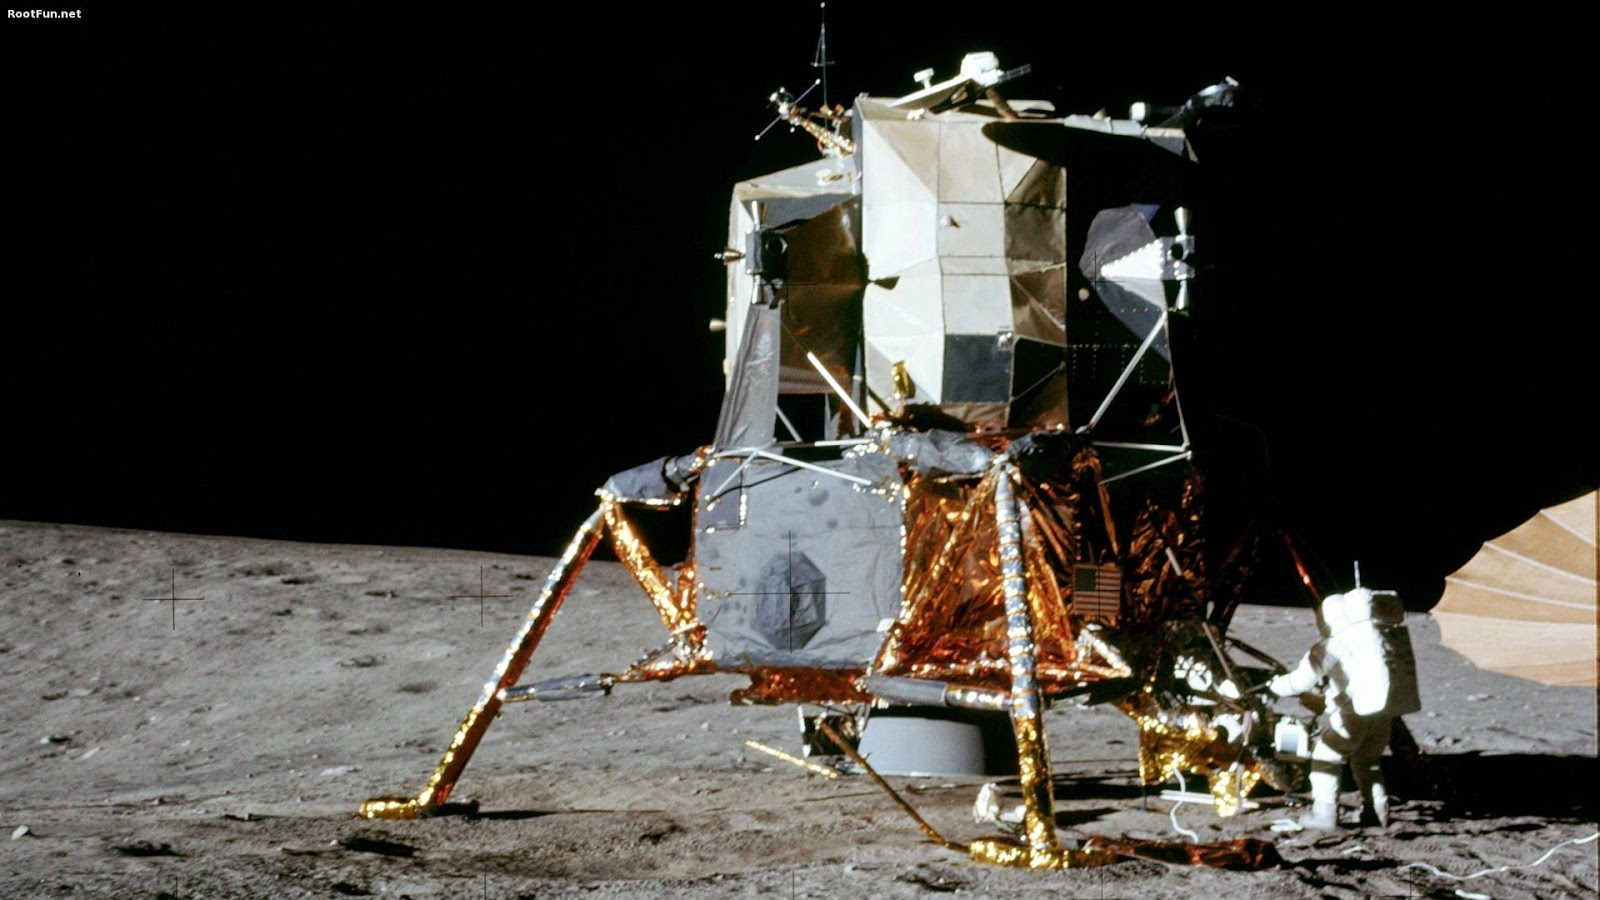 apollo 14 lunar module - photo #8